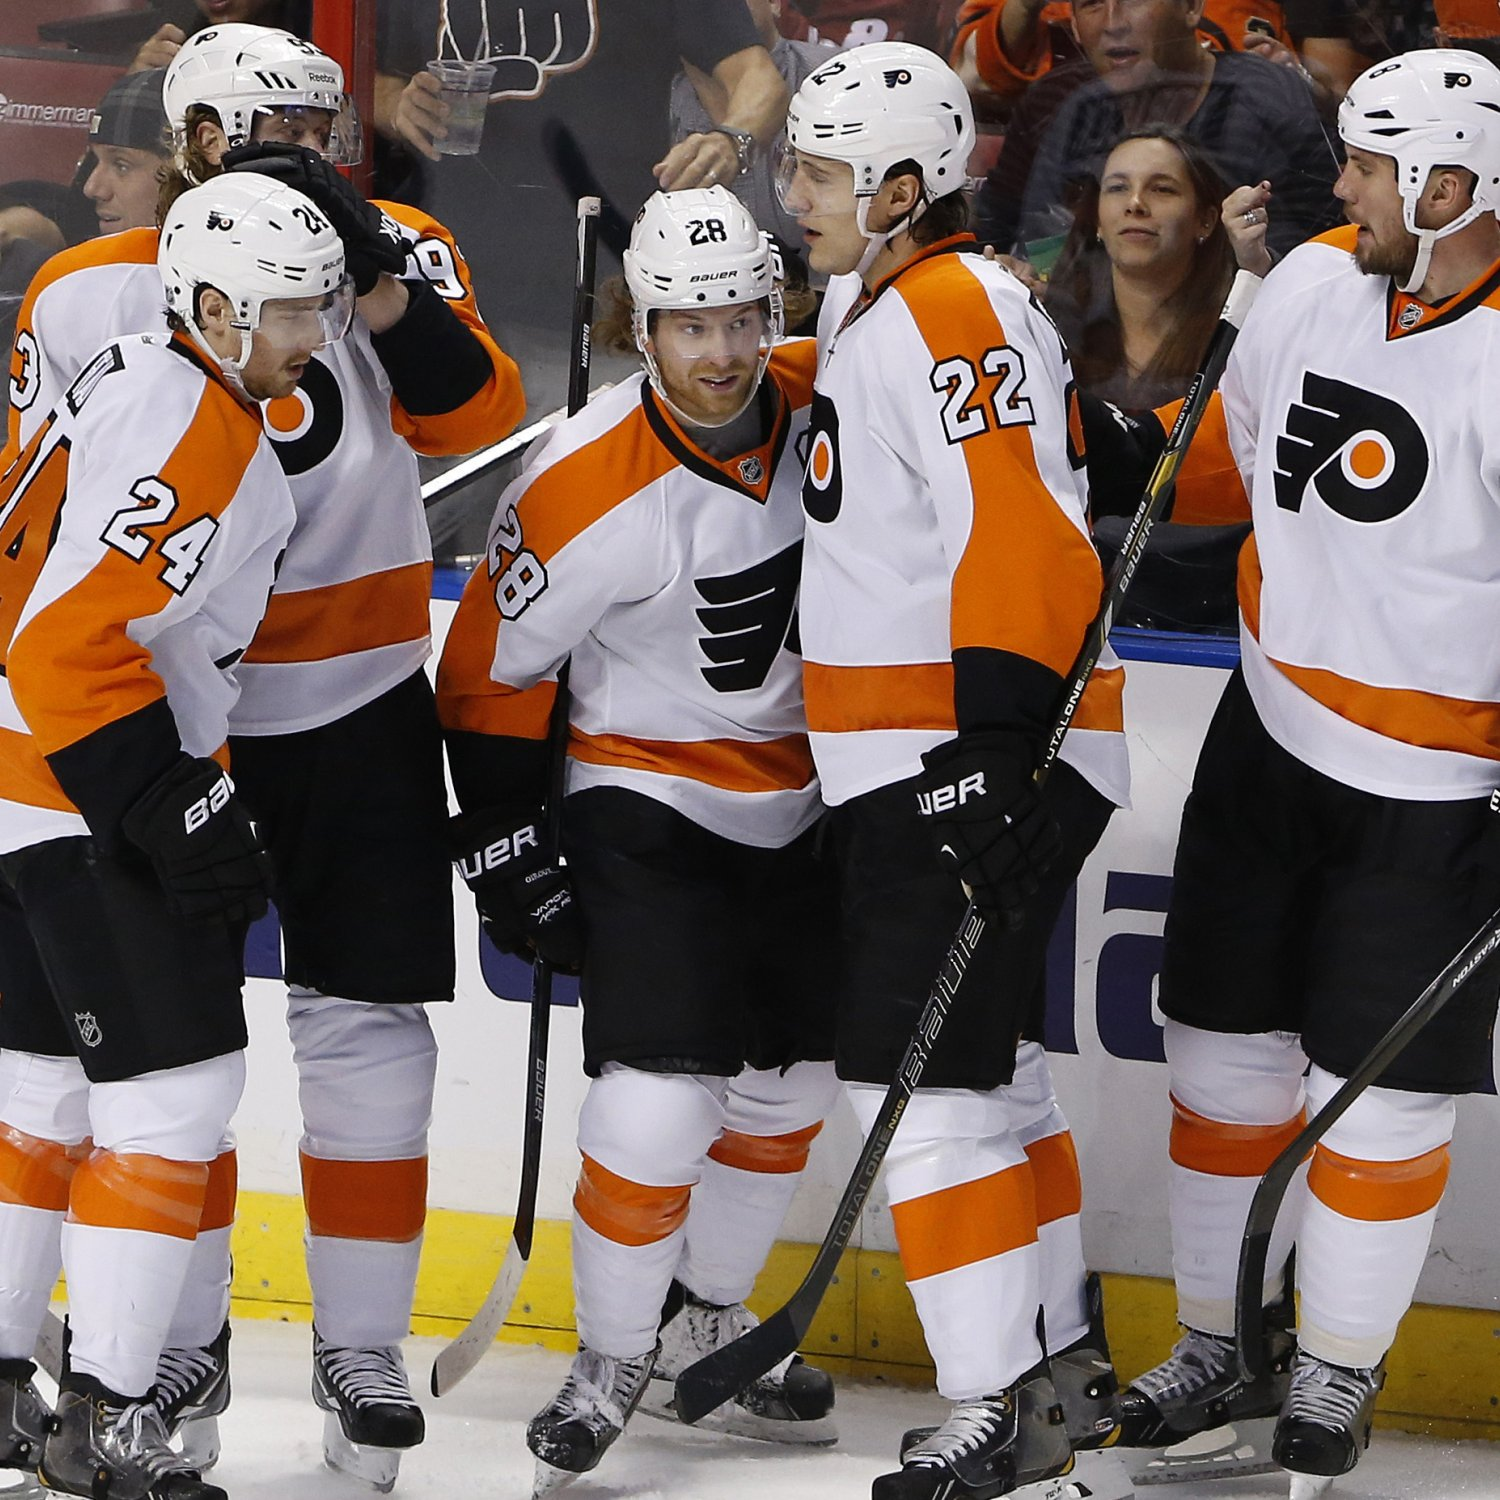 NHL Playoff Schedule 2014: TV Info And Predictions For 1st